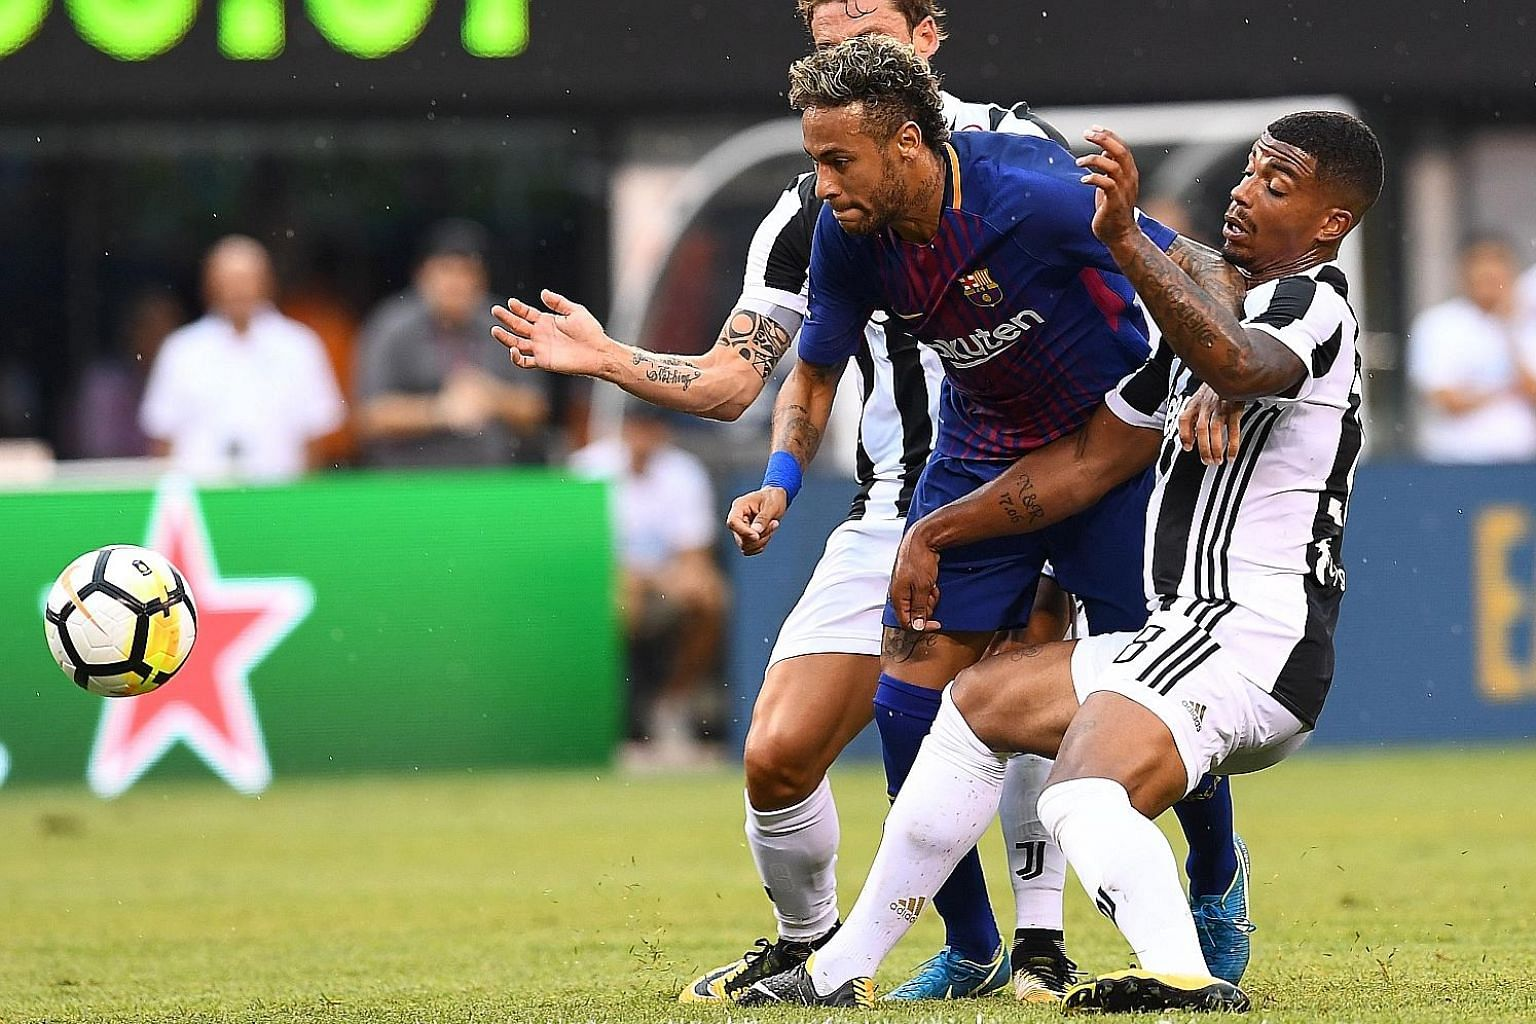 Barcelona forward Neymar vying with Juventus midfielder Mario Lemina during their ICC friendly match. The Brazilian international has been strongly tipped for a blockbuster move to French Ligue 1 side PSG.